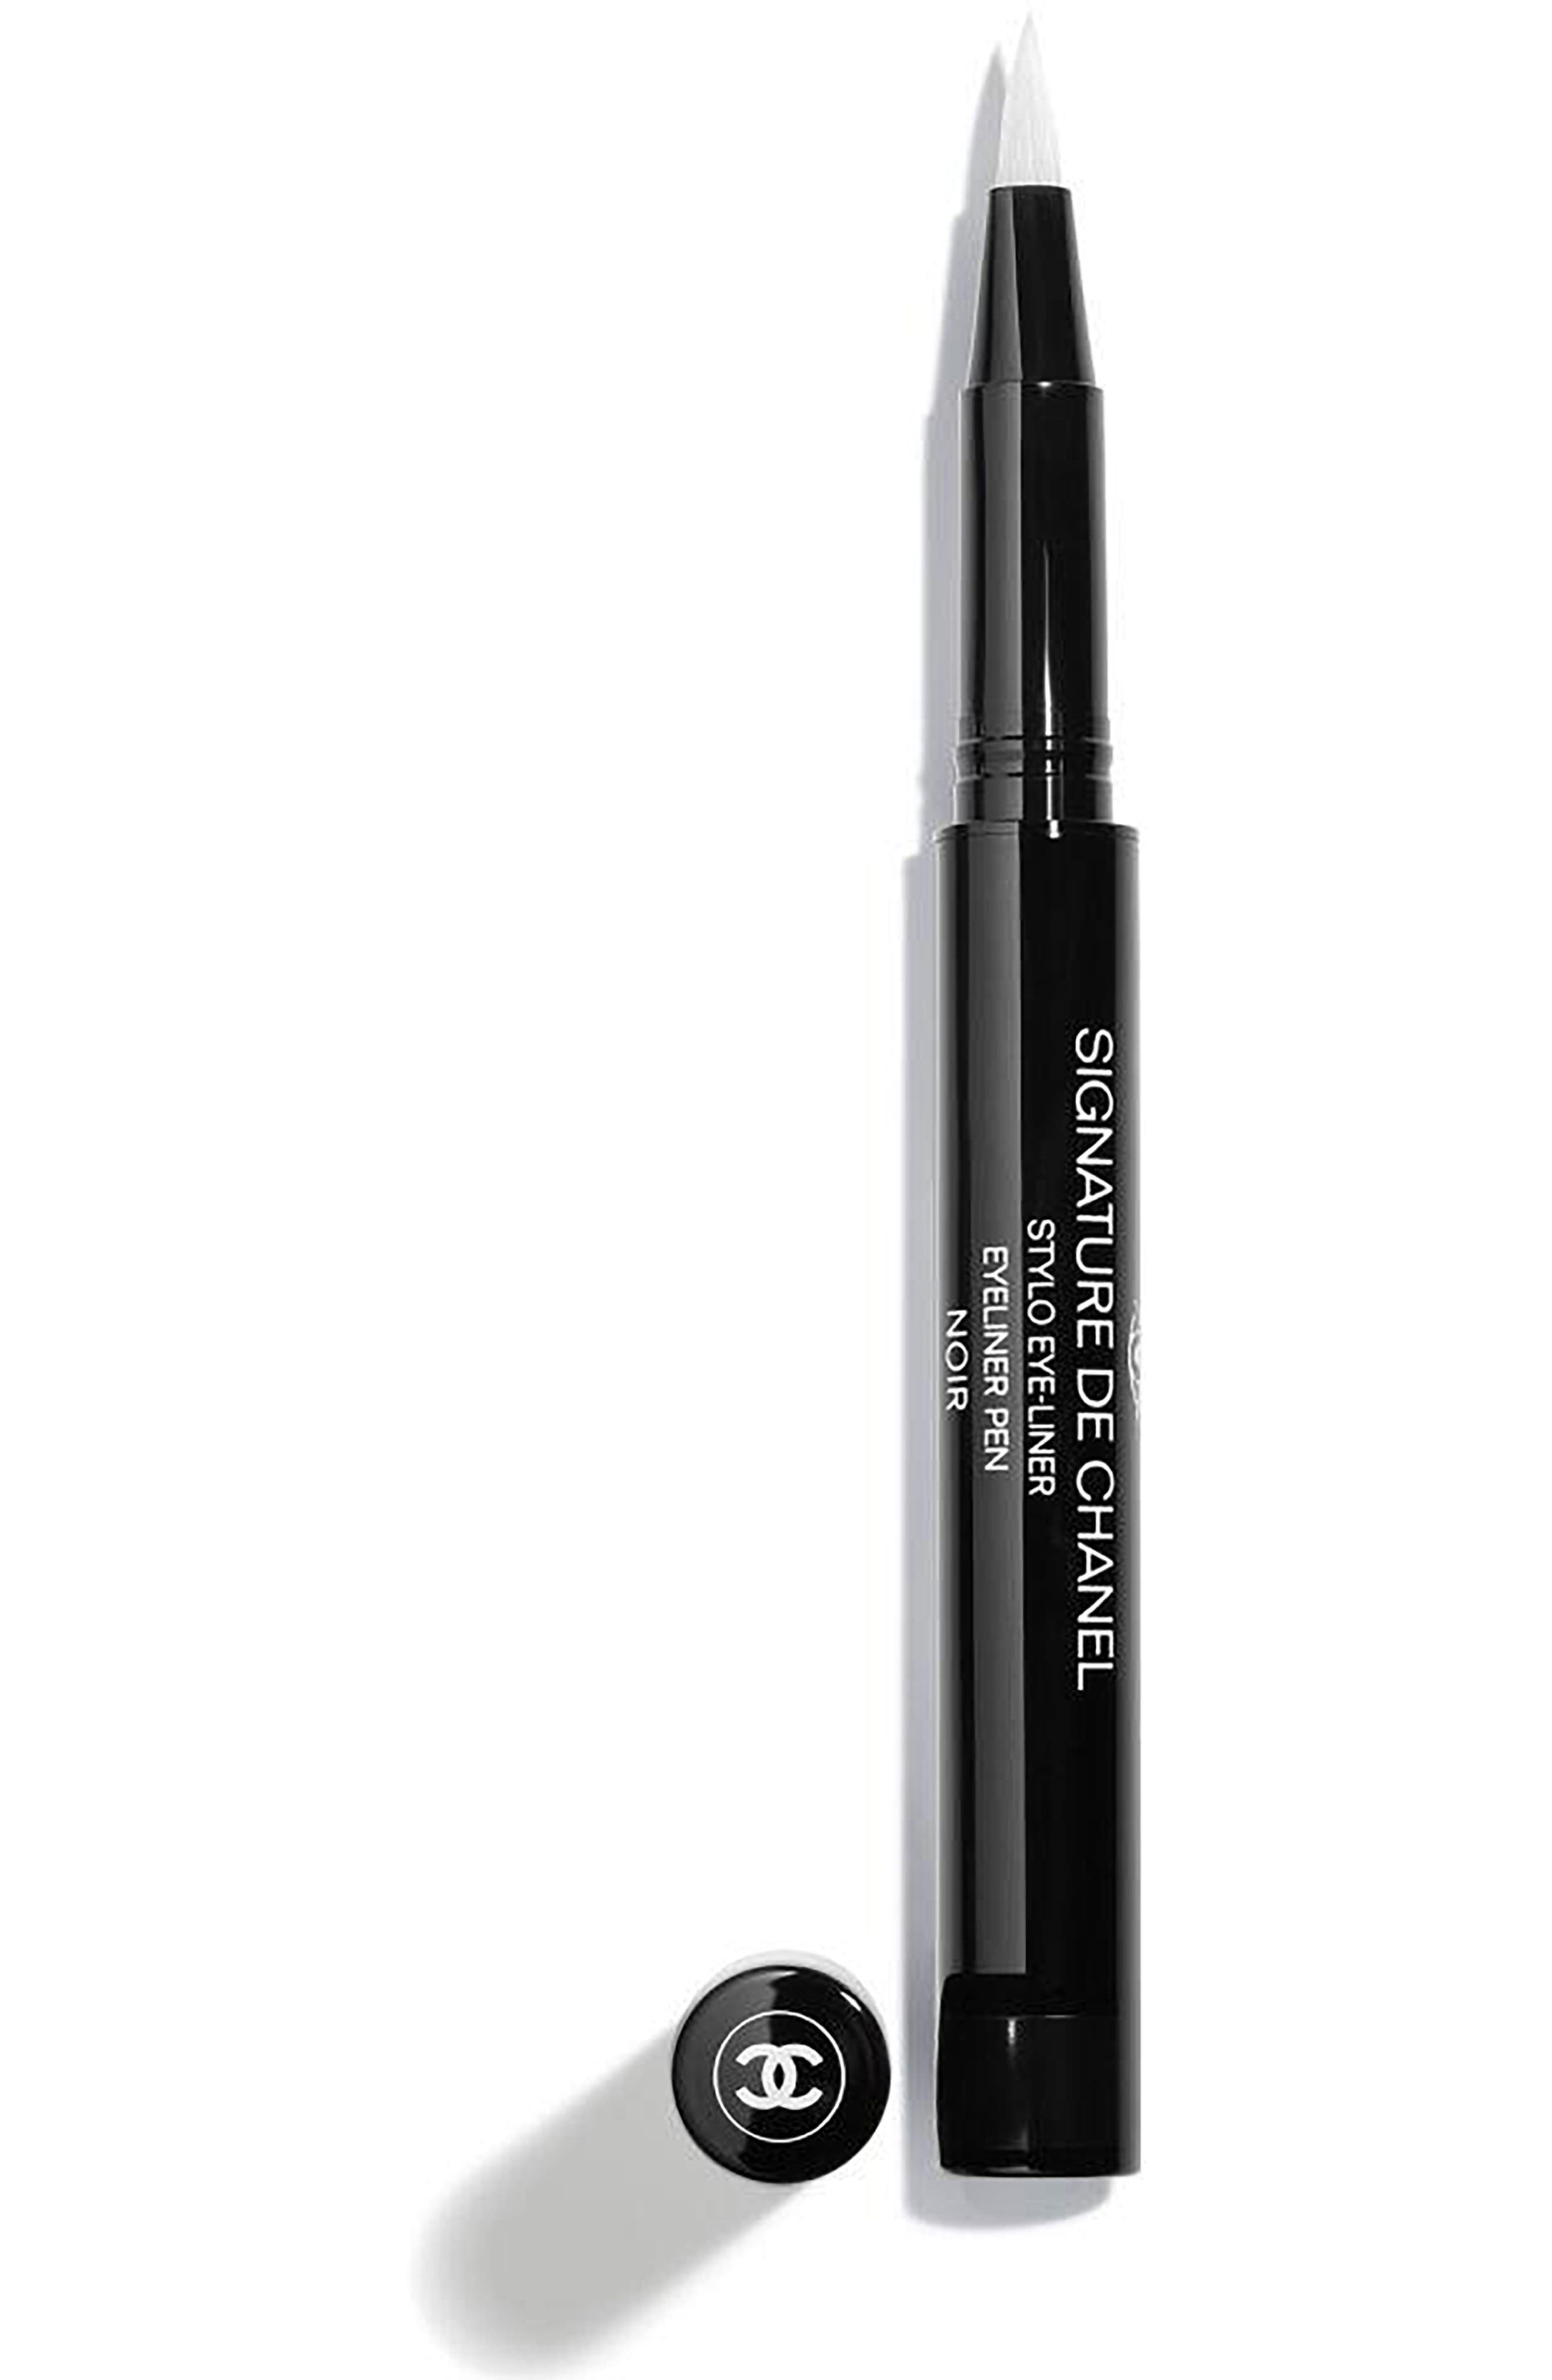 SIGNATURE DE CHANEL Intense Longwear Eyeliner Pen,                             Main thumbnail 1, color,                             NO COLOR